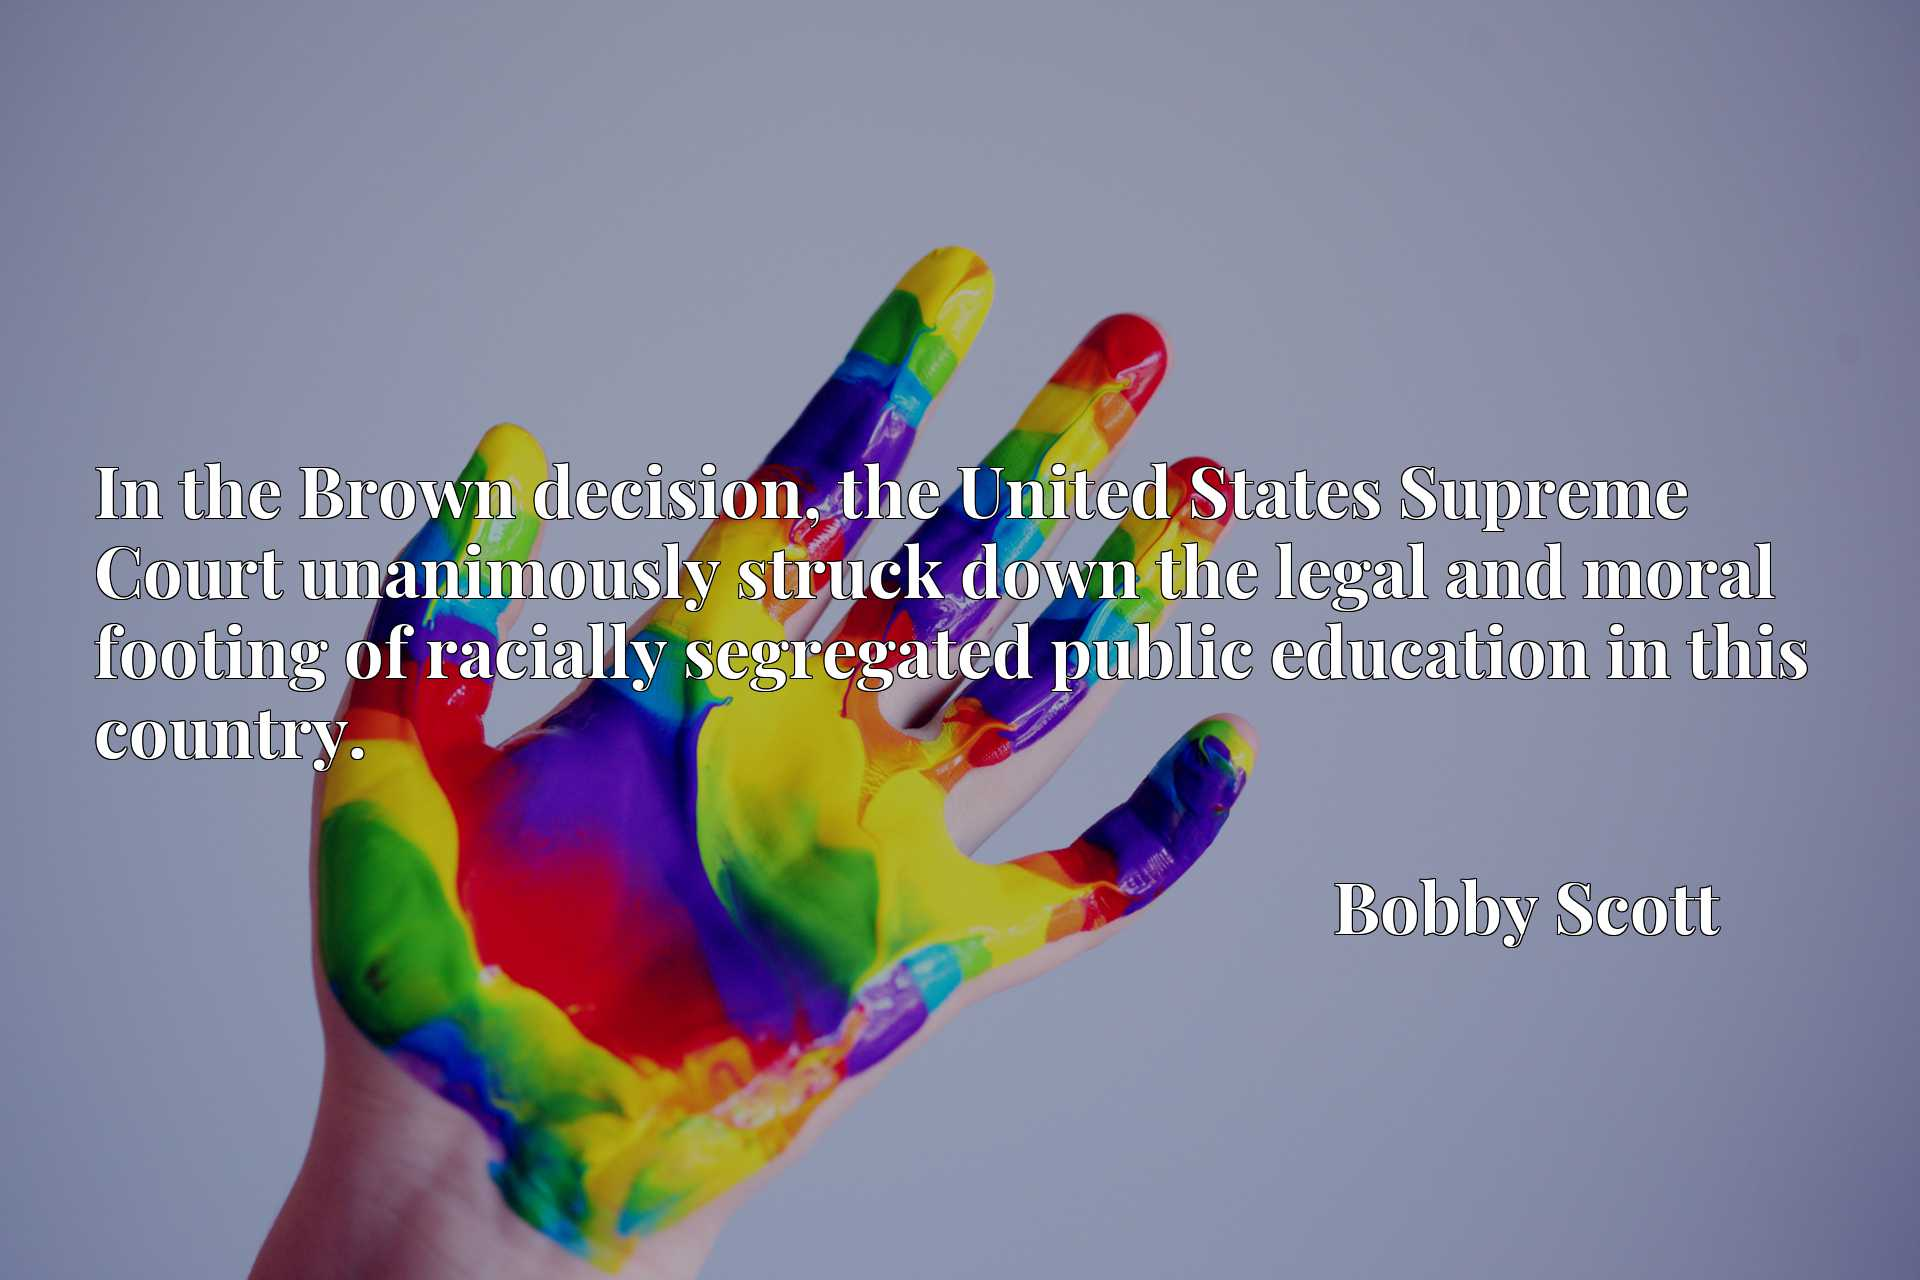 In the Brown decision, the United States Supreme Court unanimously struck down the legal and moral footing of racially segregated public education in this country.